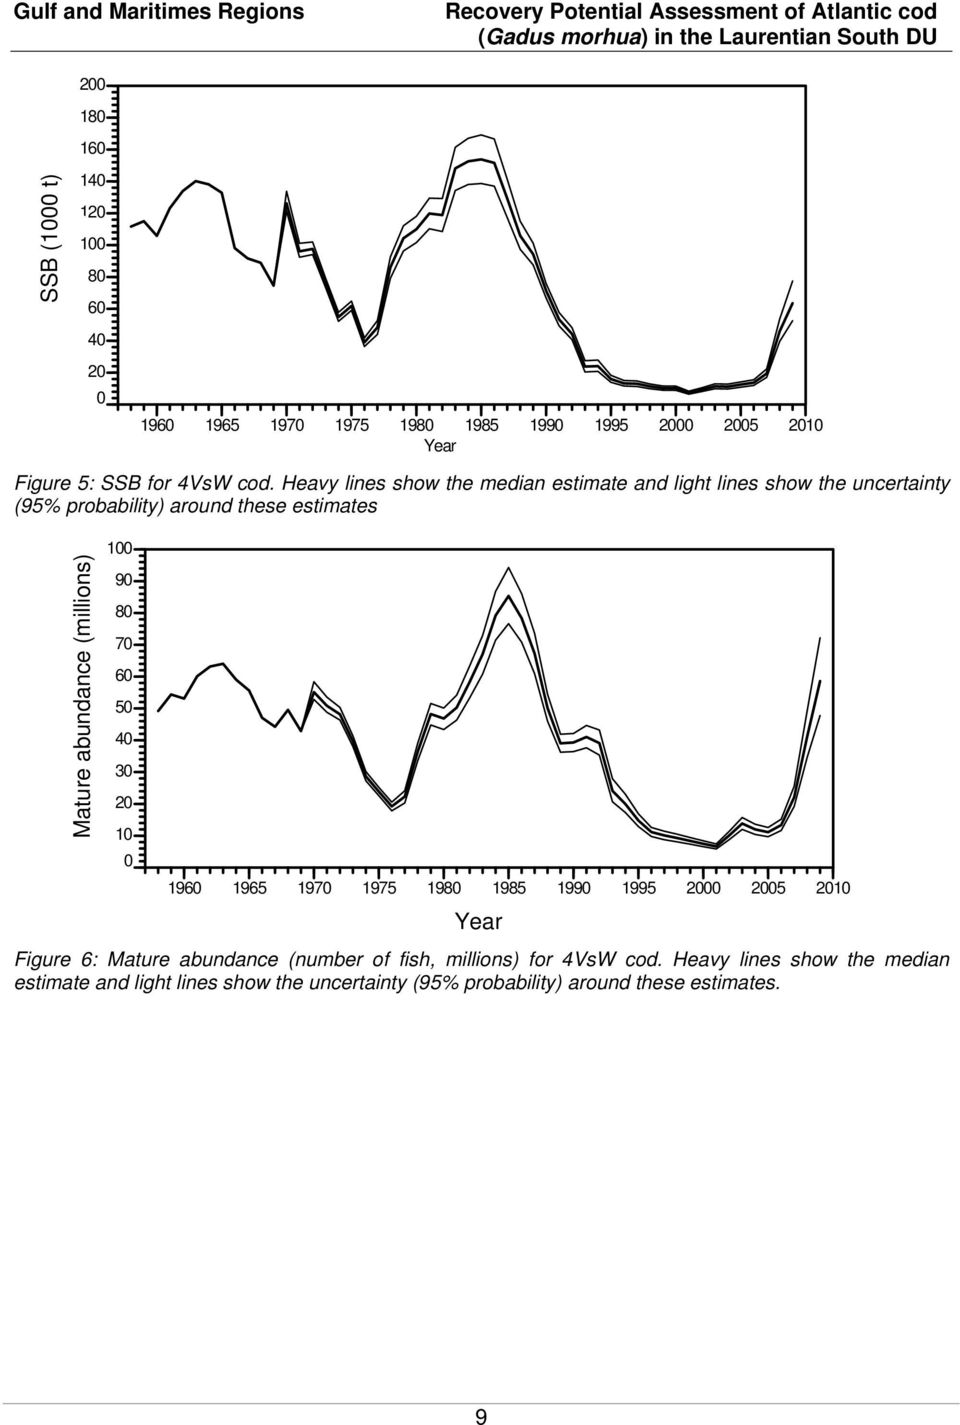 (millions) (kt) 1 9 8 7 6 5 4 3 2 1 4VsW cod 196 1965 197 1975 198 1985 199 1995 2 25 21 year Figure 6: Mature abundance (number of